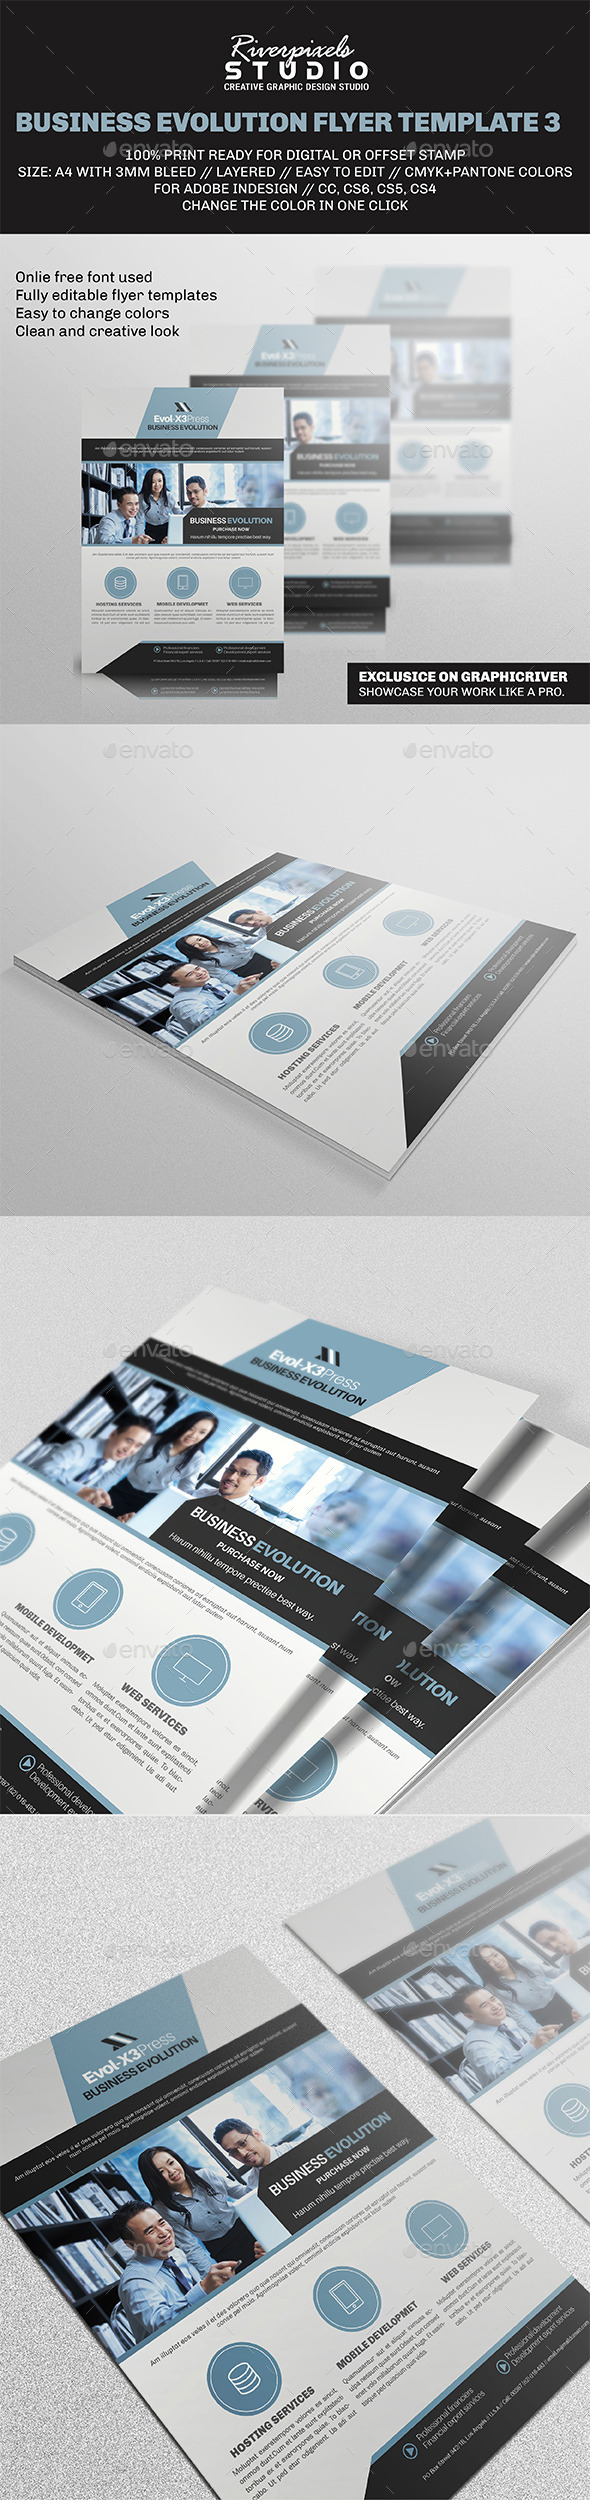 GraphicRiver Business Evolution Flyer Template III 9692185